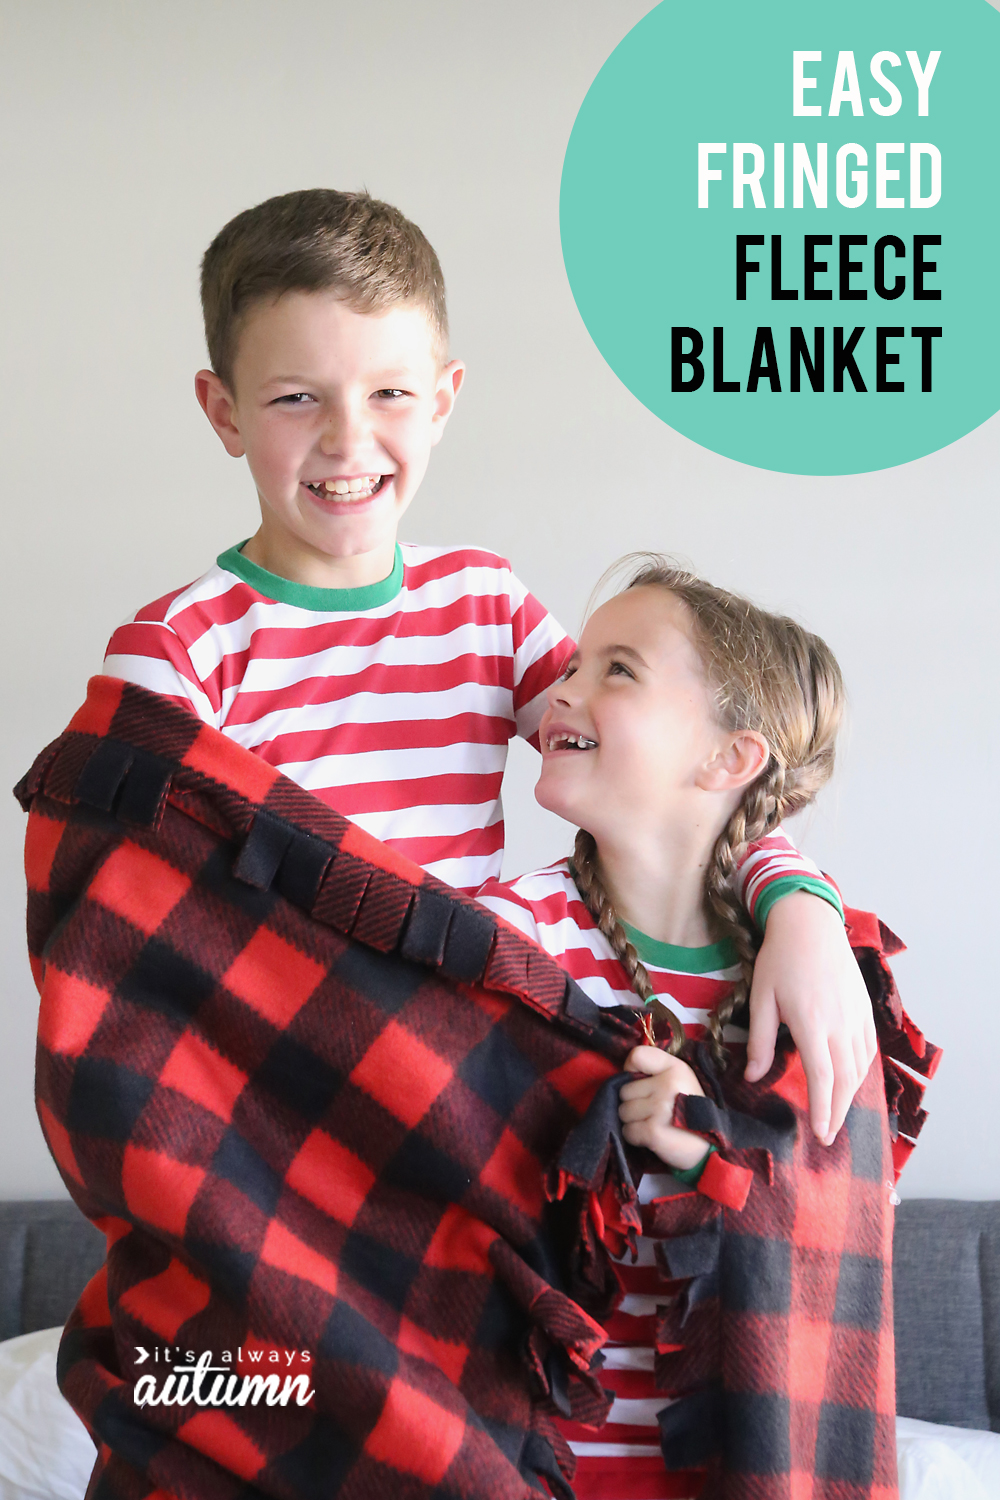 This fringed fleece blanket is easy to make and turns out so cute! Start making them now for Christmas. DIY gift idea.